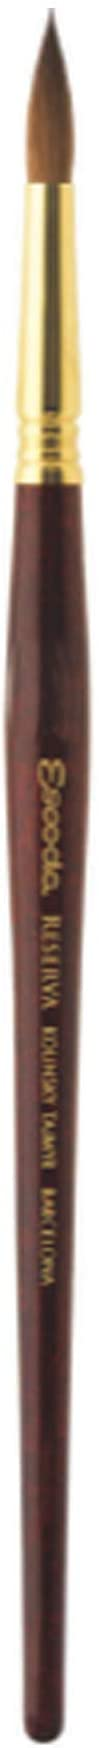 Escoda Reserva 1212 Series Artist Watercolor Short Handle Round Paint Brush Size 10, Pure Kolinsky-Tajmyr,1212-10